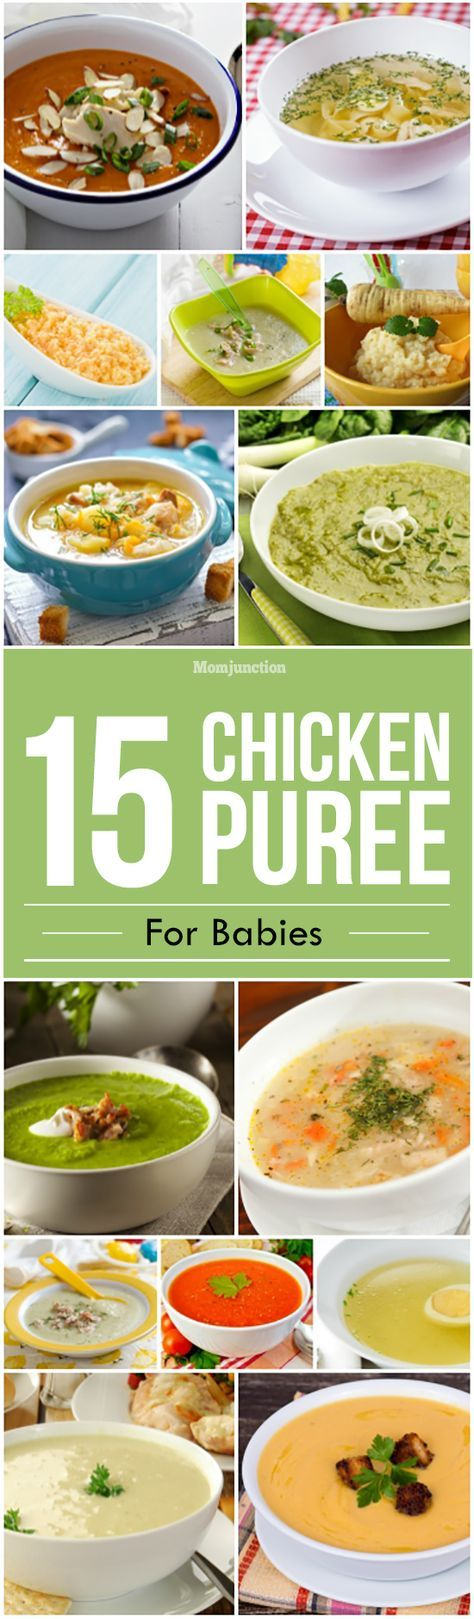 Looking to introduce your baby to the amazing world of solid foods? Planning for ways to include chicken in his diet? Check out 15 chicken puree for babies.